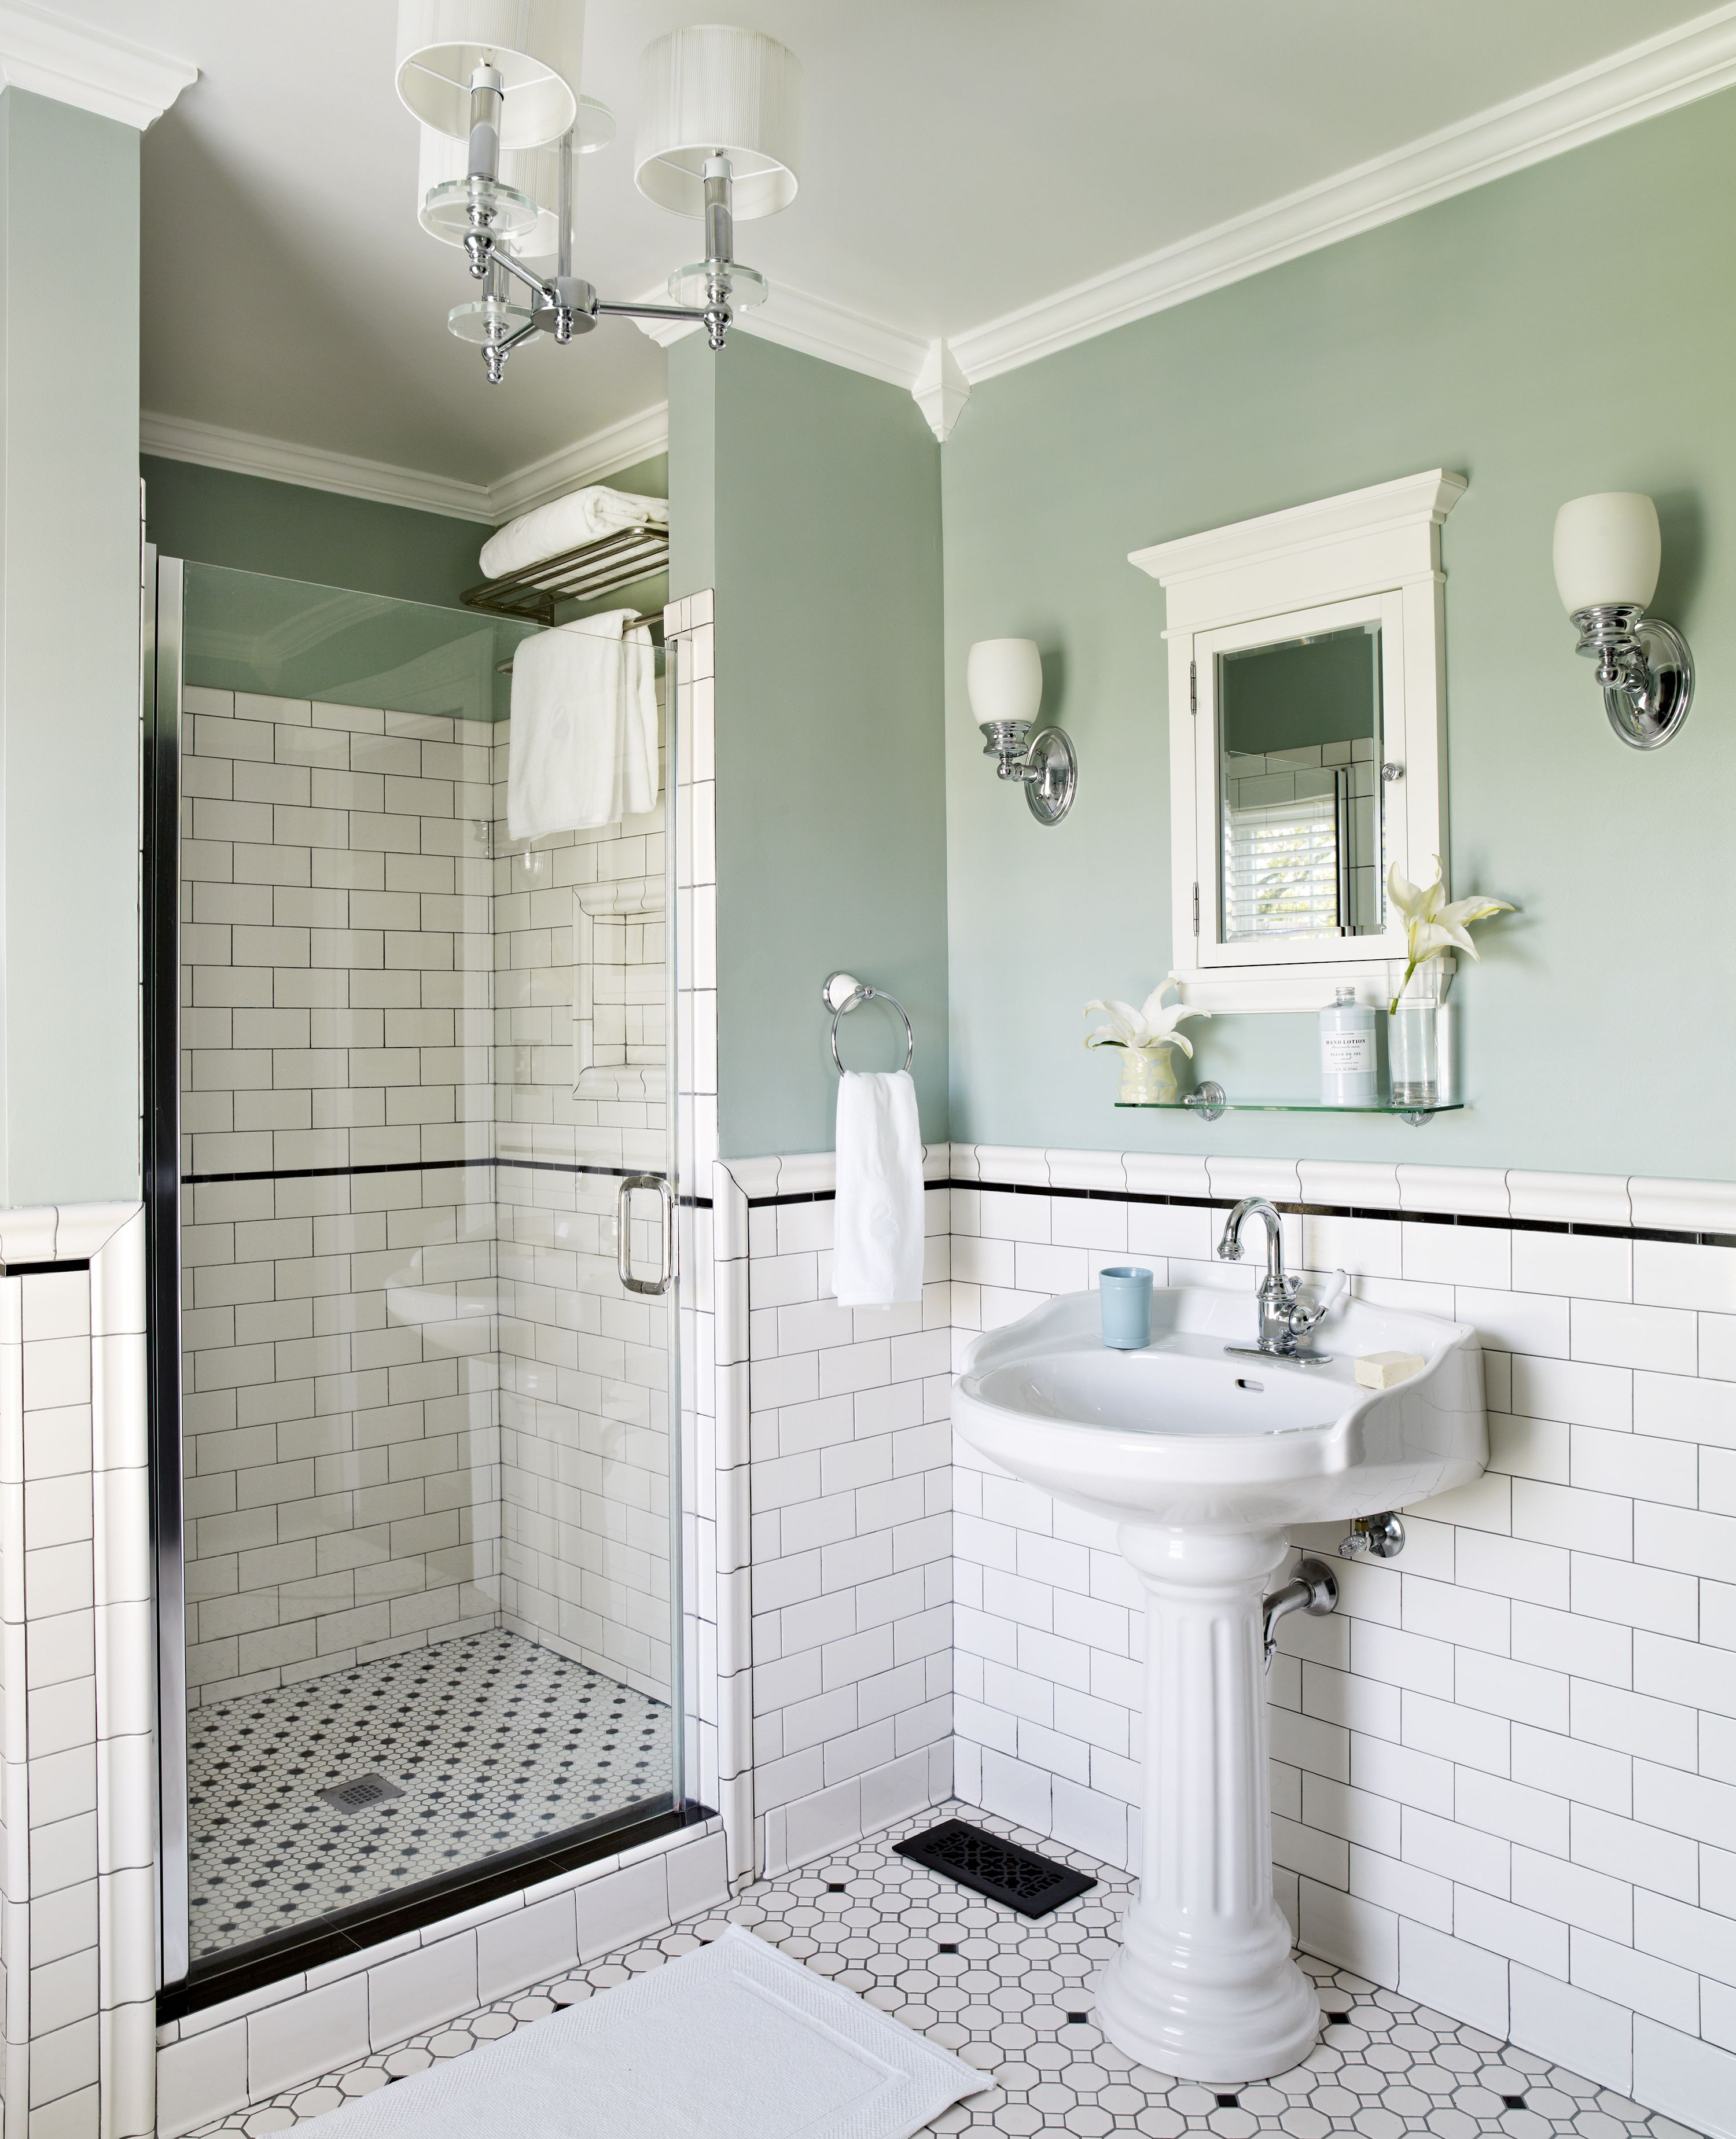 Husband And Wife Remodeling Newbies Learn To Tackle Everything From Roofing To Foundation Walls While Renovati Bathrooms Remodel Green Bathroom Trendy Bathroom